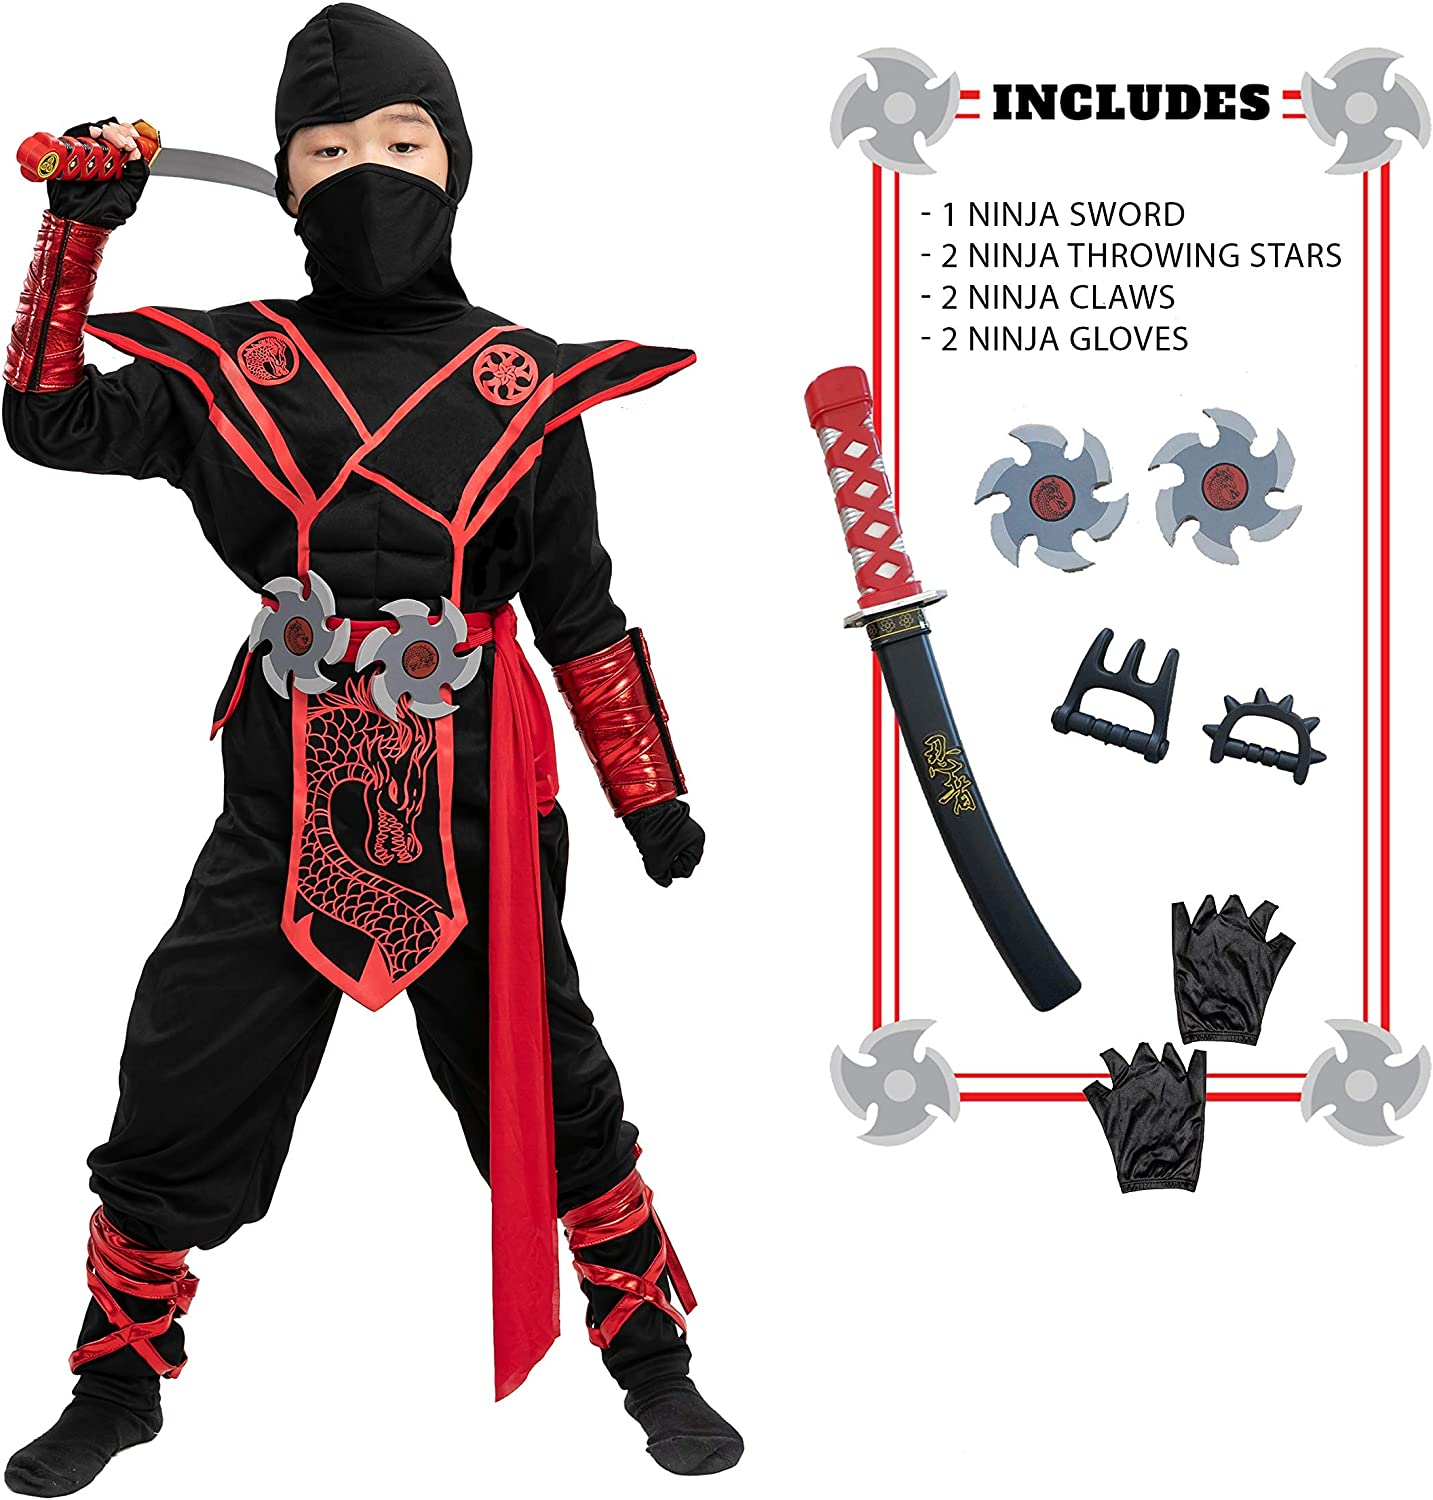 Ninja Dragon Red Costume Outfit Set for Kids Halloween Dress Up Party